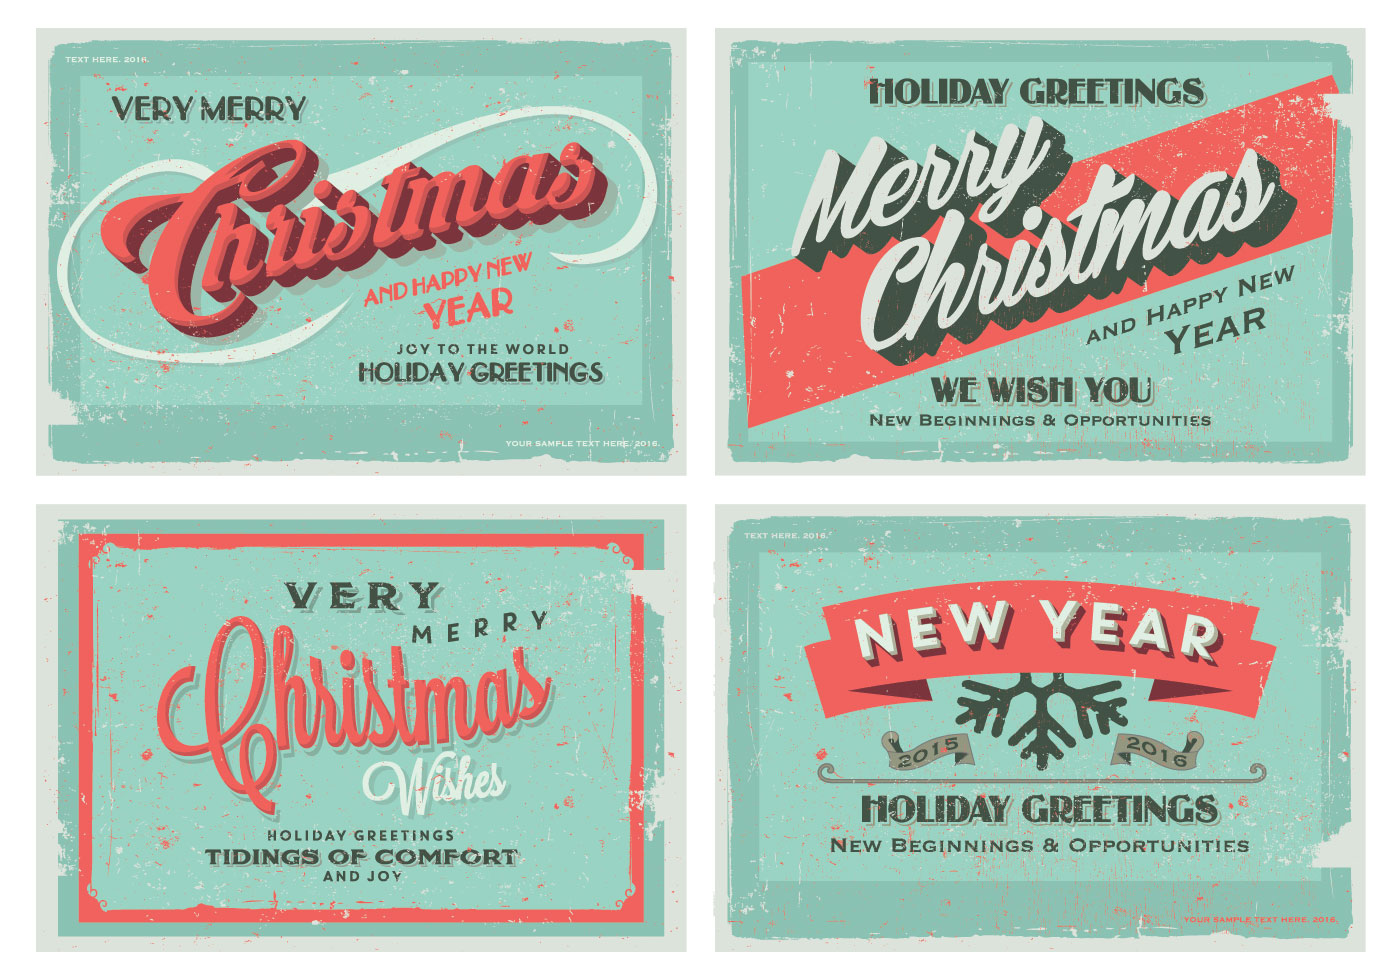 Cool Happy New Year Collection Download Free Happy New Year Collection Download Free Stock Graphics Images Very Merry Very Merry inspiration Merry New Year